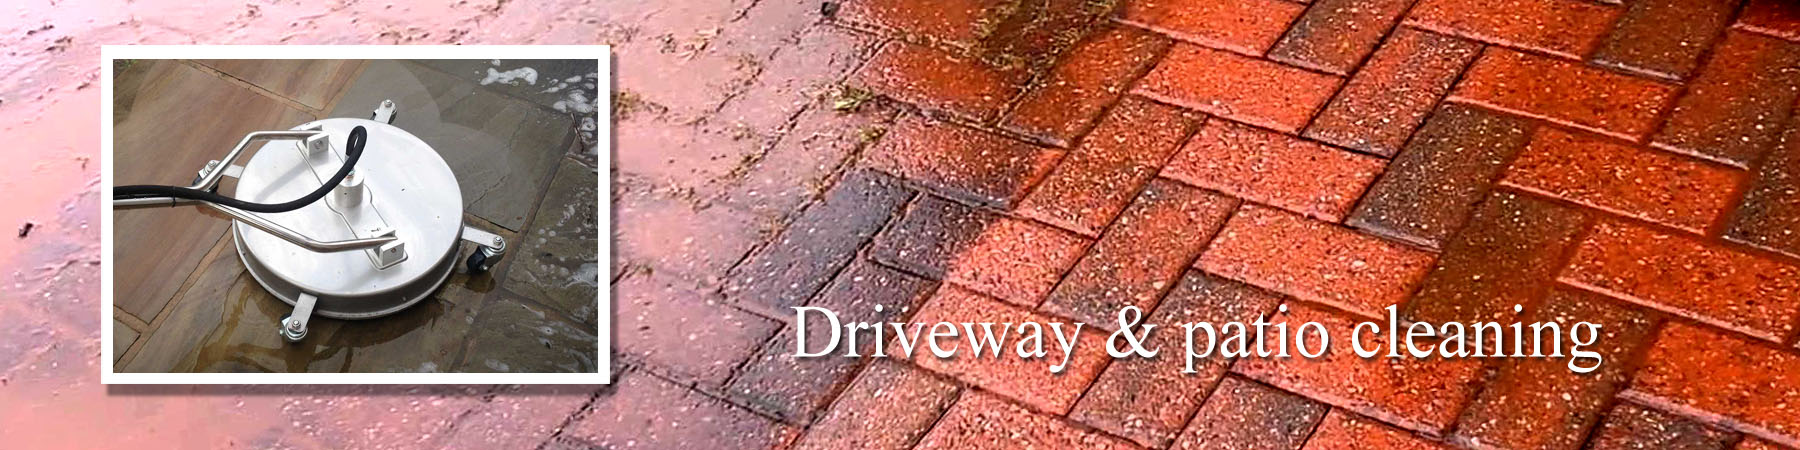 J.R. Driveway & Patio Cleaning Newick J R Cleaning